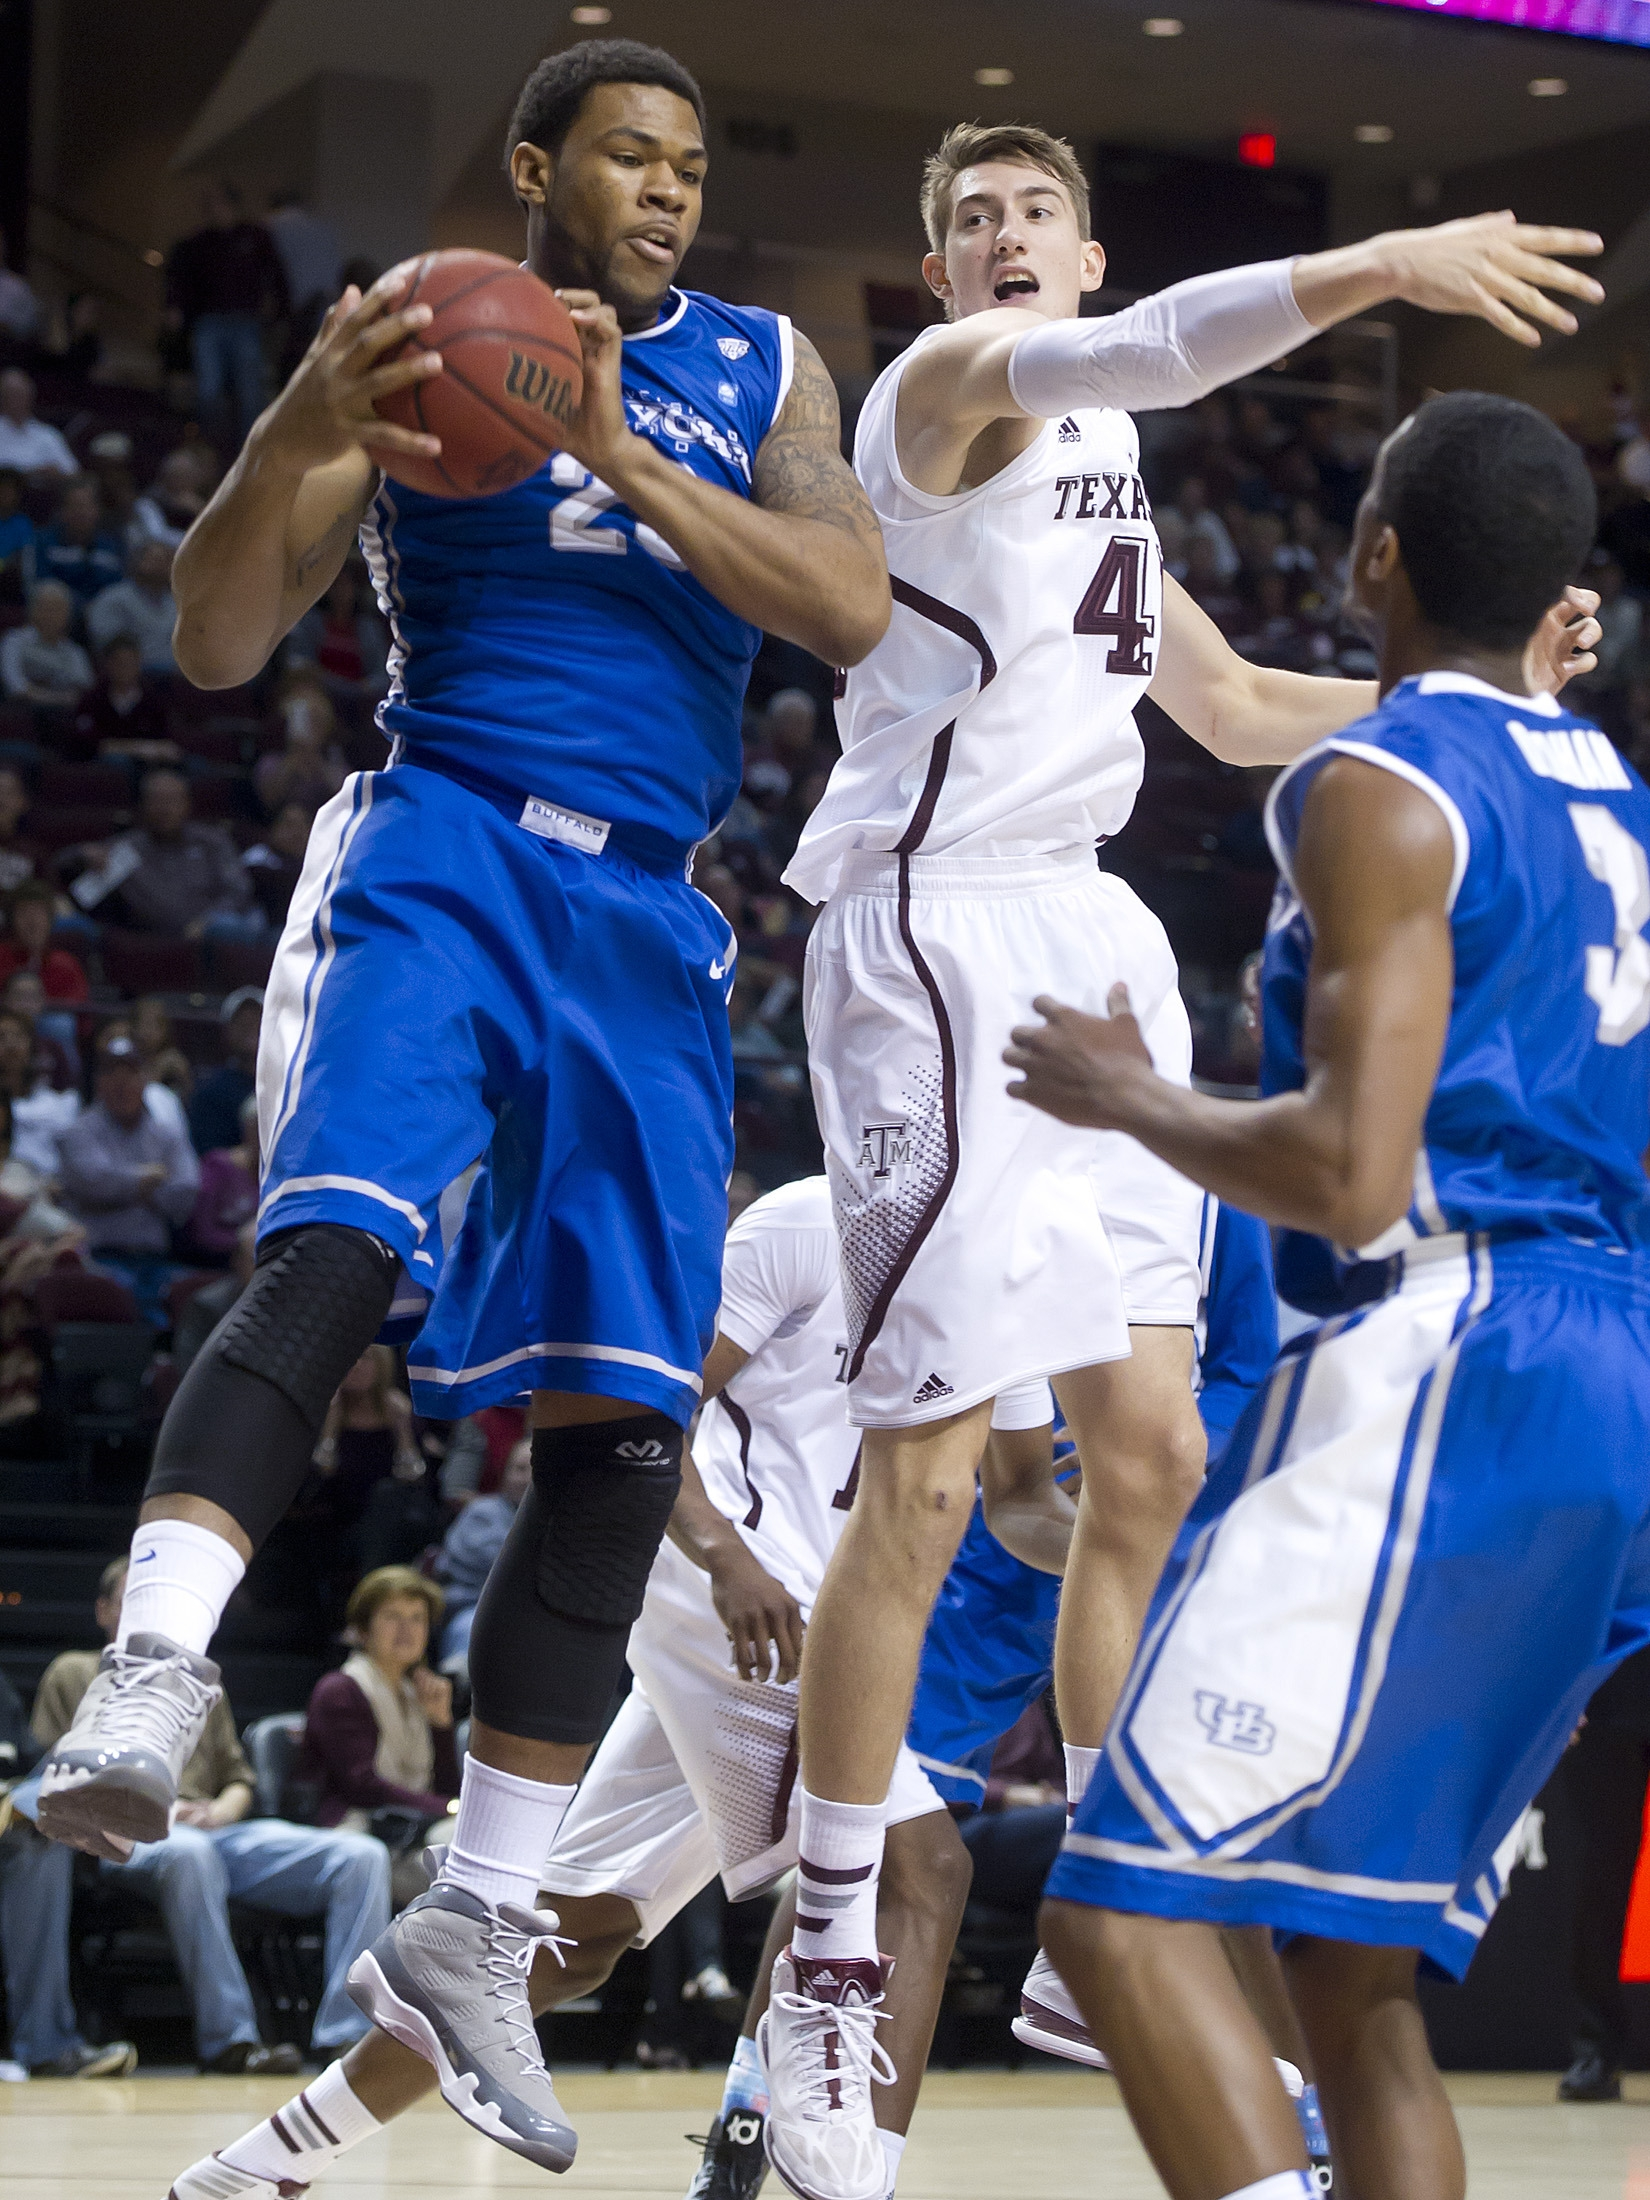 Buffalo's Justin Moss, left, pulls in the rebound against Texas A&M's Dylan Johns in Friday's game.